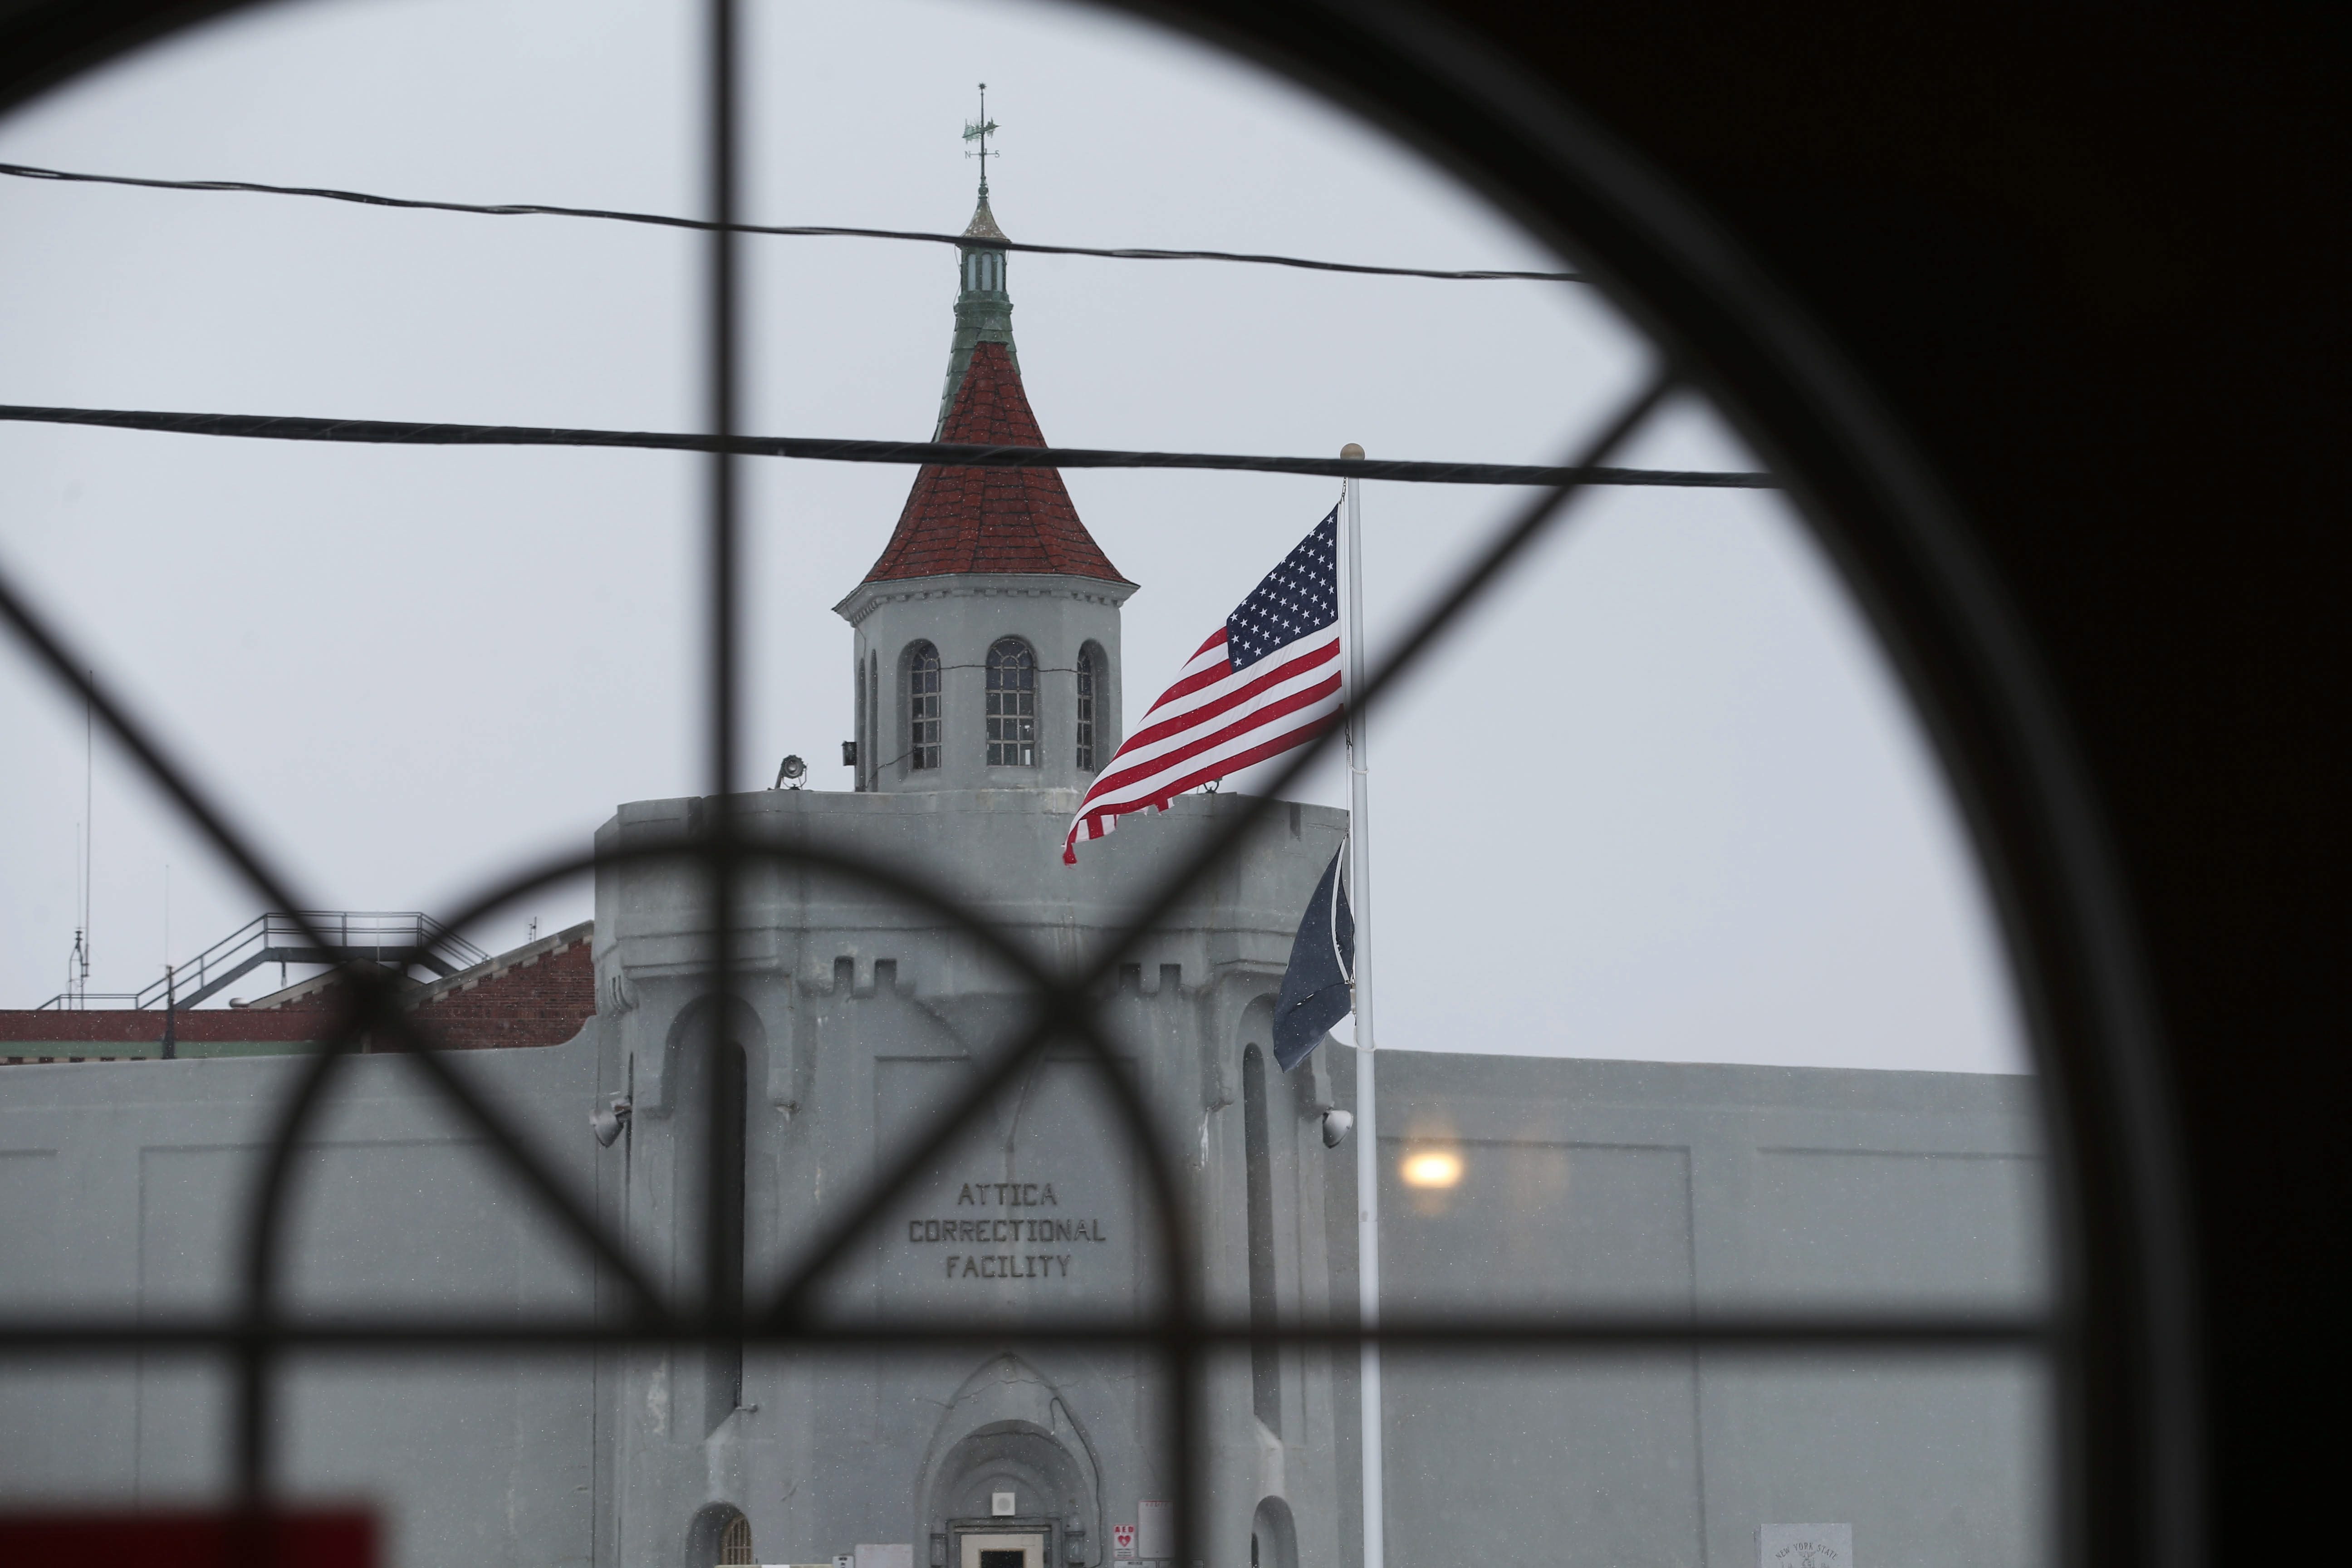 A News contributor offers a firsthand account of the inside of Attica Correctional Facility, a maximum security New York State prison. (Sharon Cantillon/News file photo)